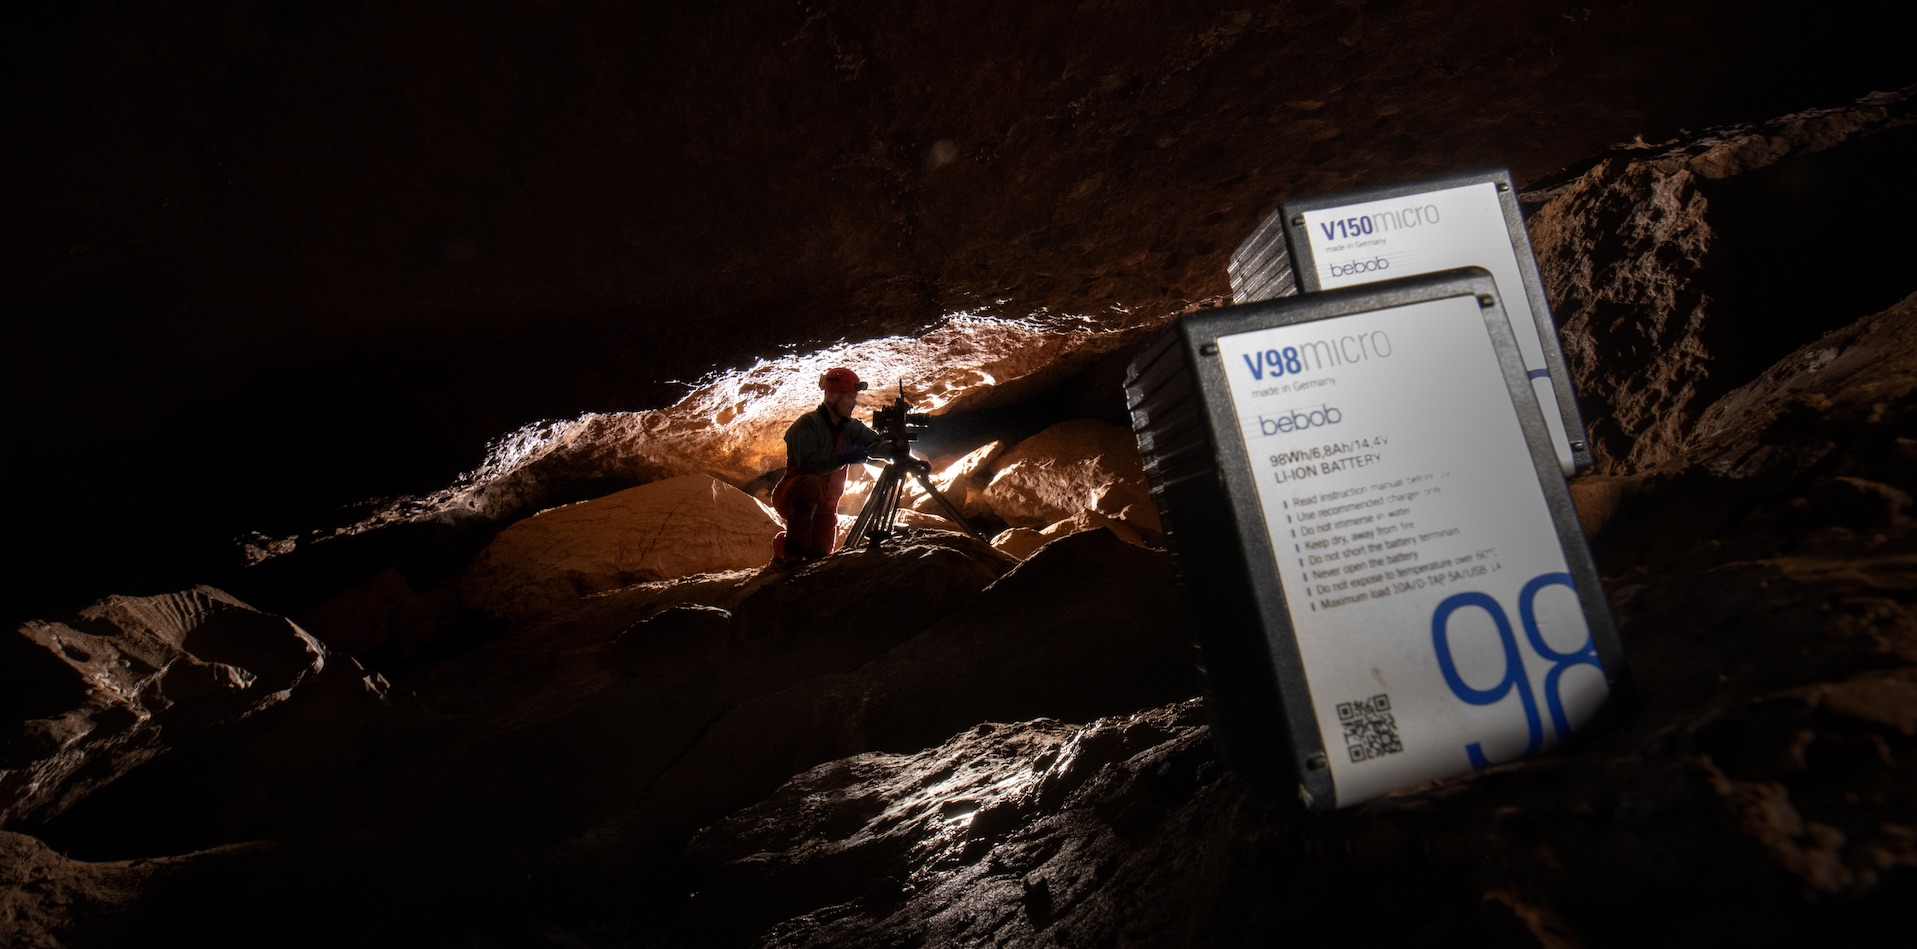 Reliable power for extreme settings: bebob Vmicros support National Geographic's Thai Cave Rescue docu